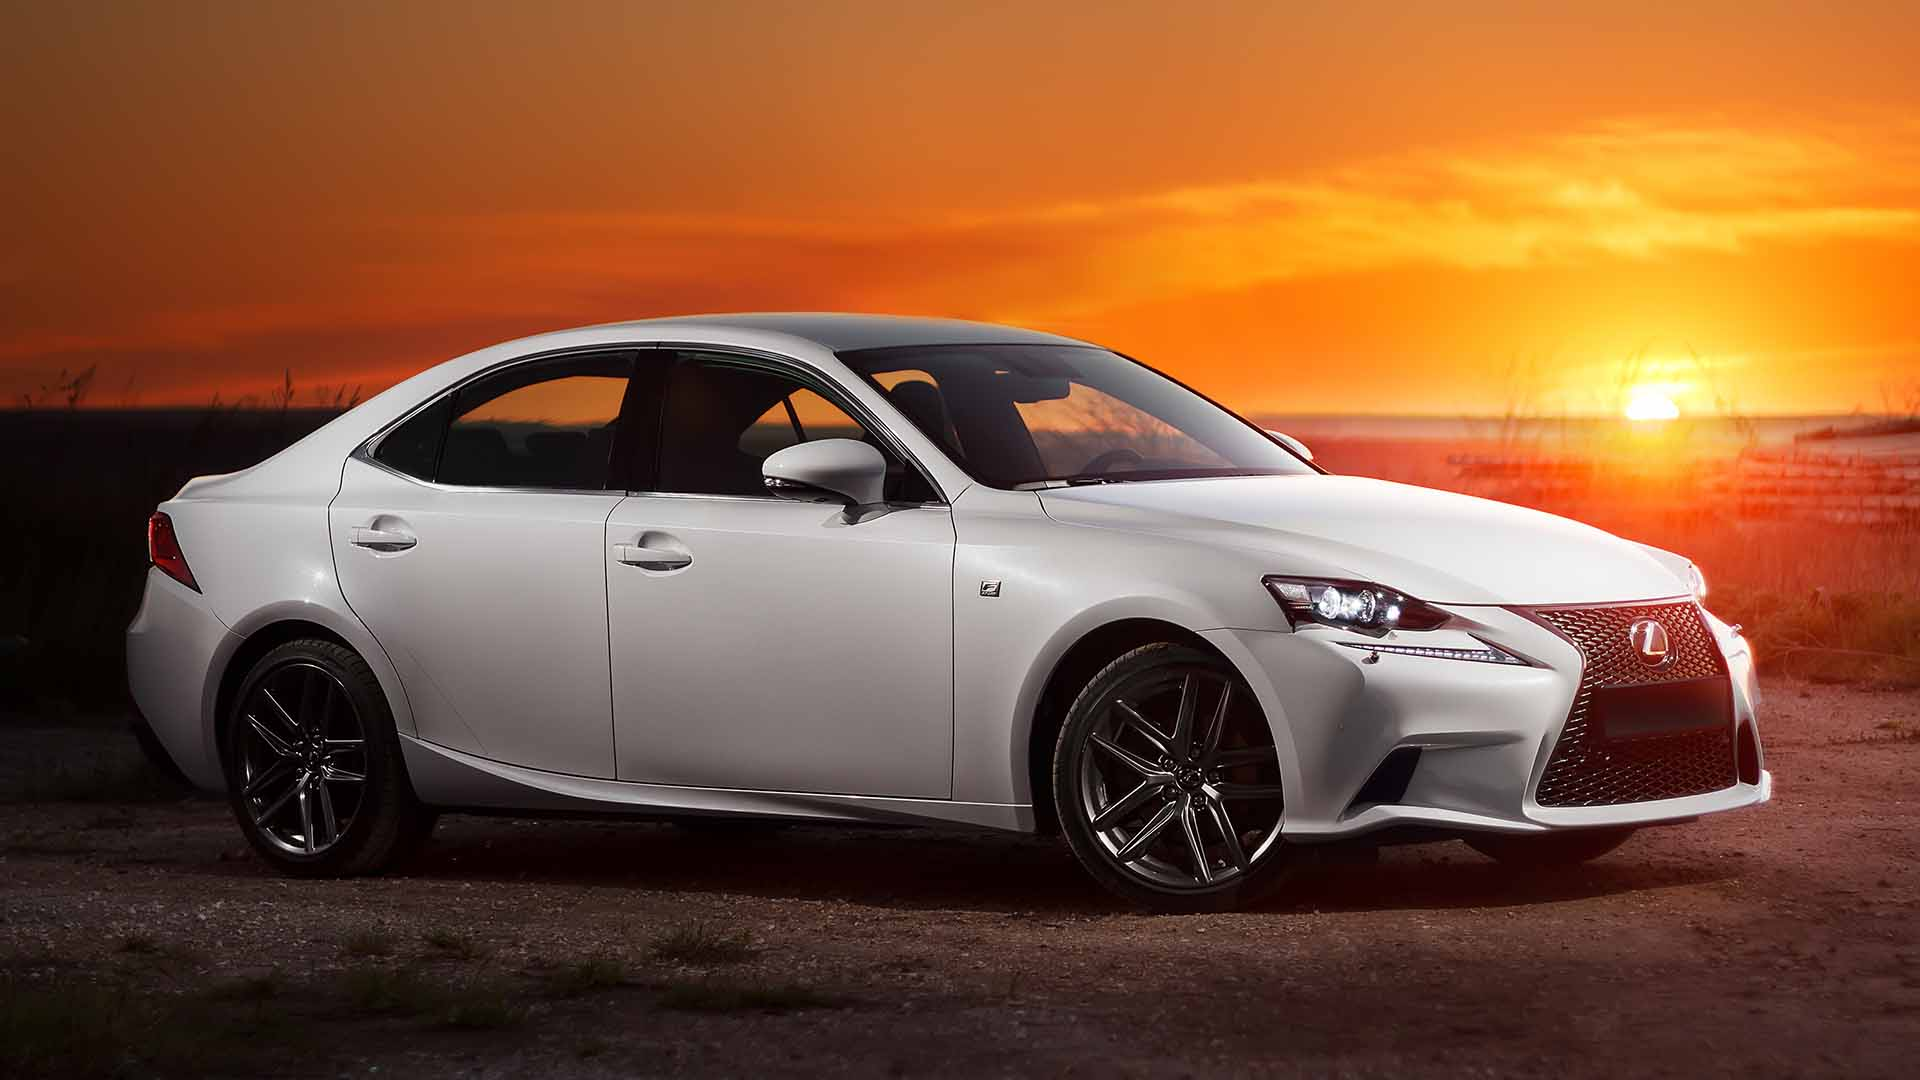 I really fancy a Lexus